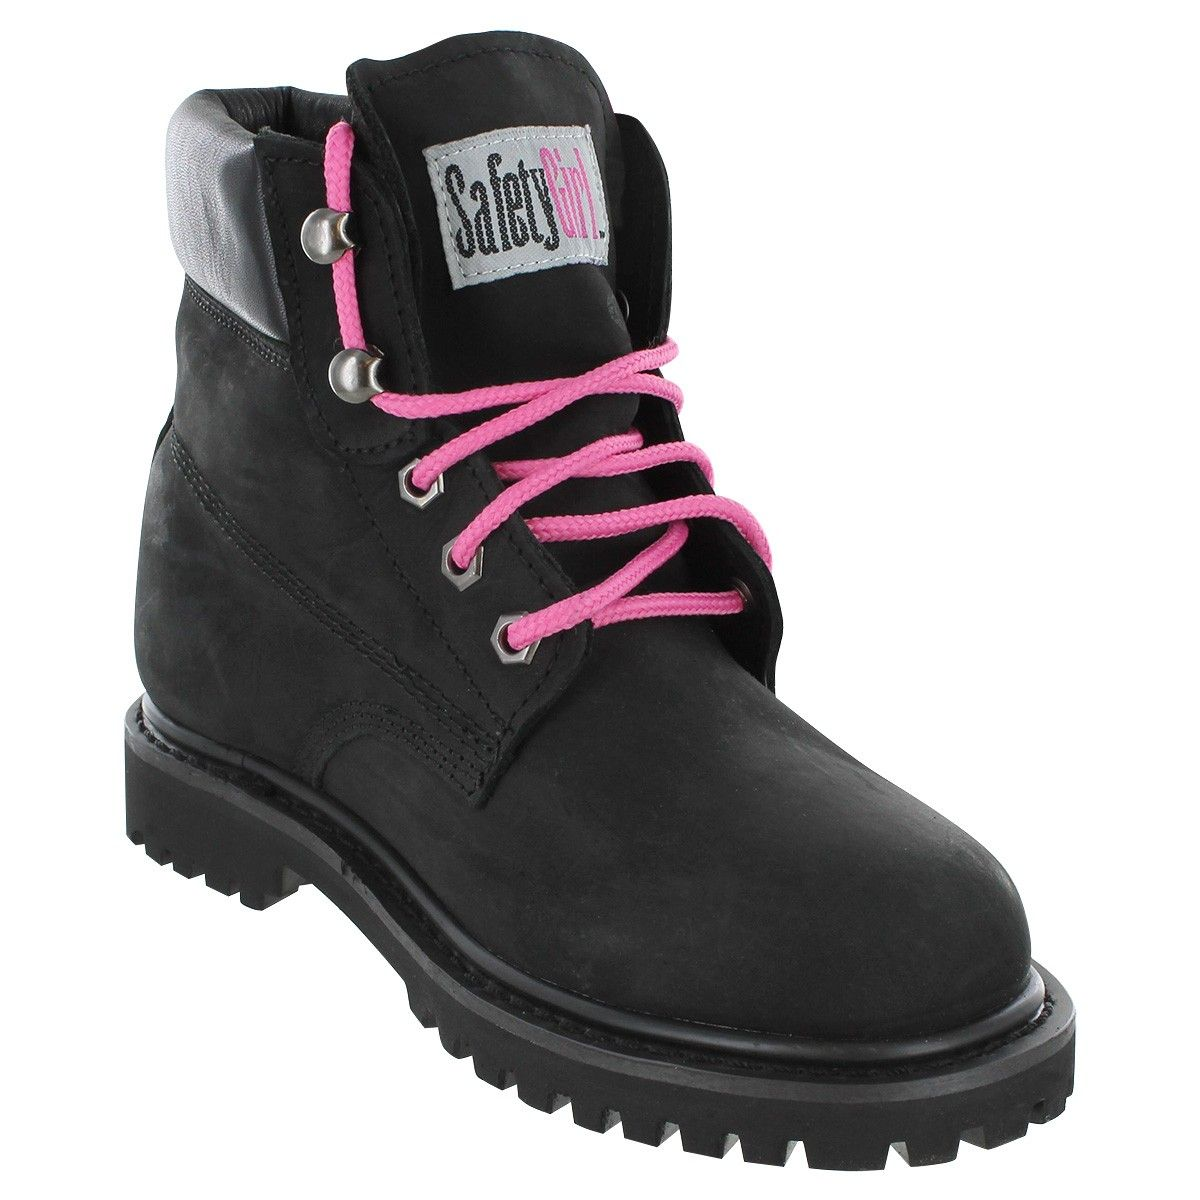 Safety Girl II Steel Toe Work Boots - Black | Shark tank, Ankle ...